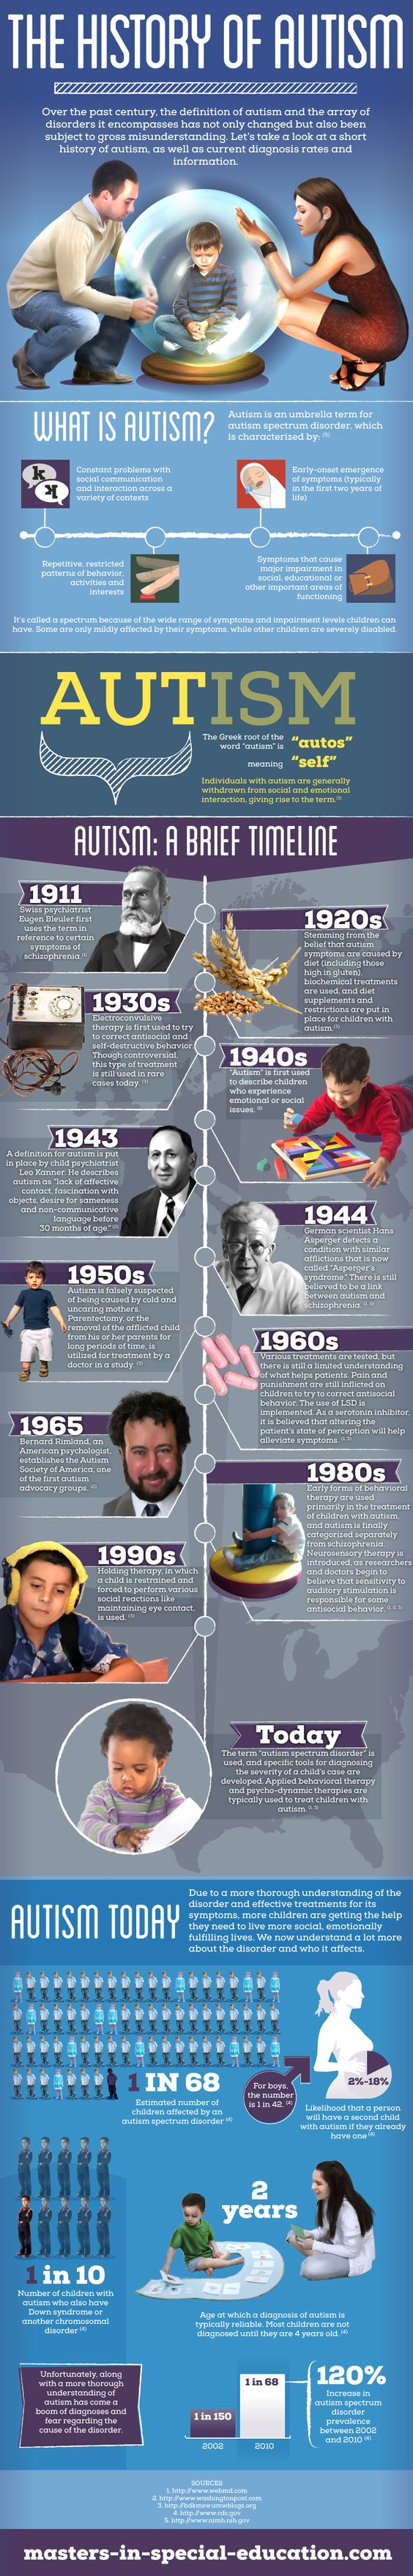 History of Autism. Over the past century, the definition of autism and the array of disorders it encompasses has not only changed but also been subject to gross misunderstanding. Let's take a look at a short history of autism, as well as current diagnosis rates and information.: